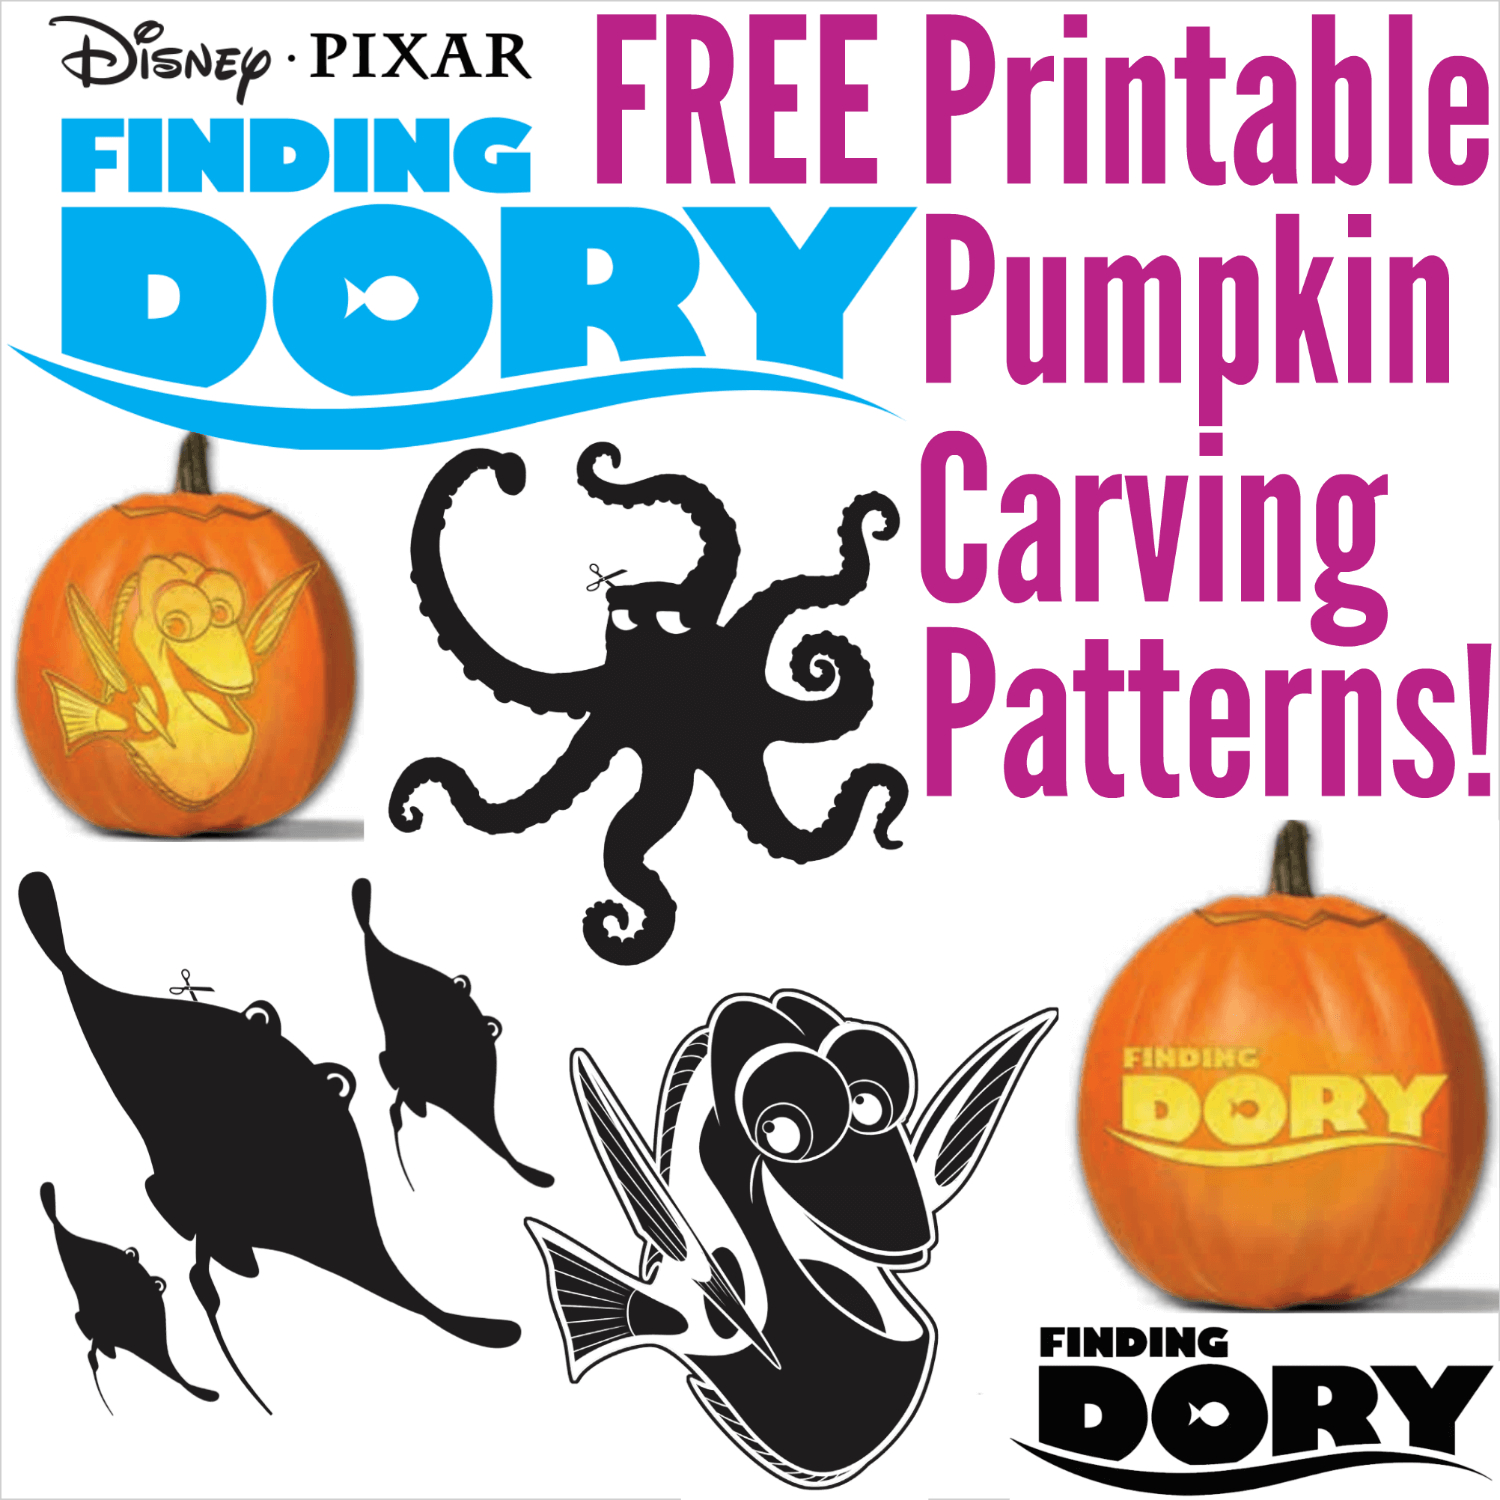 Free Finding Dory Pumpkin Carving Patterns To Print! - Free Pumpkin Printable Carving Patterns